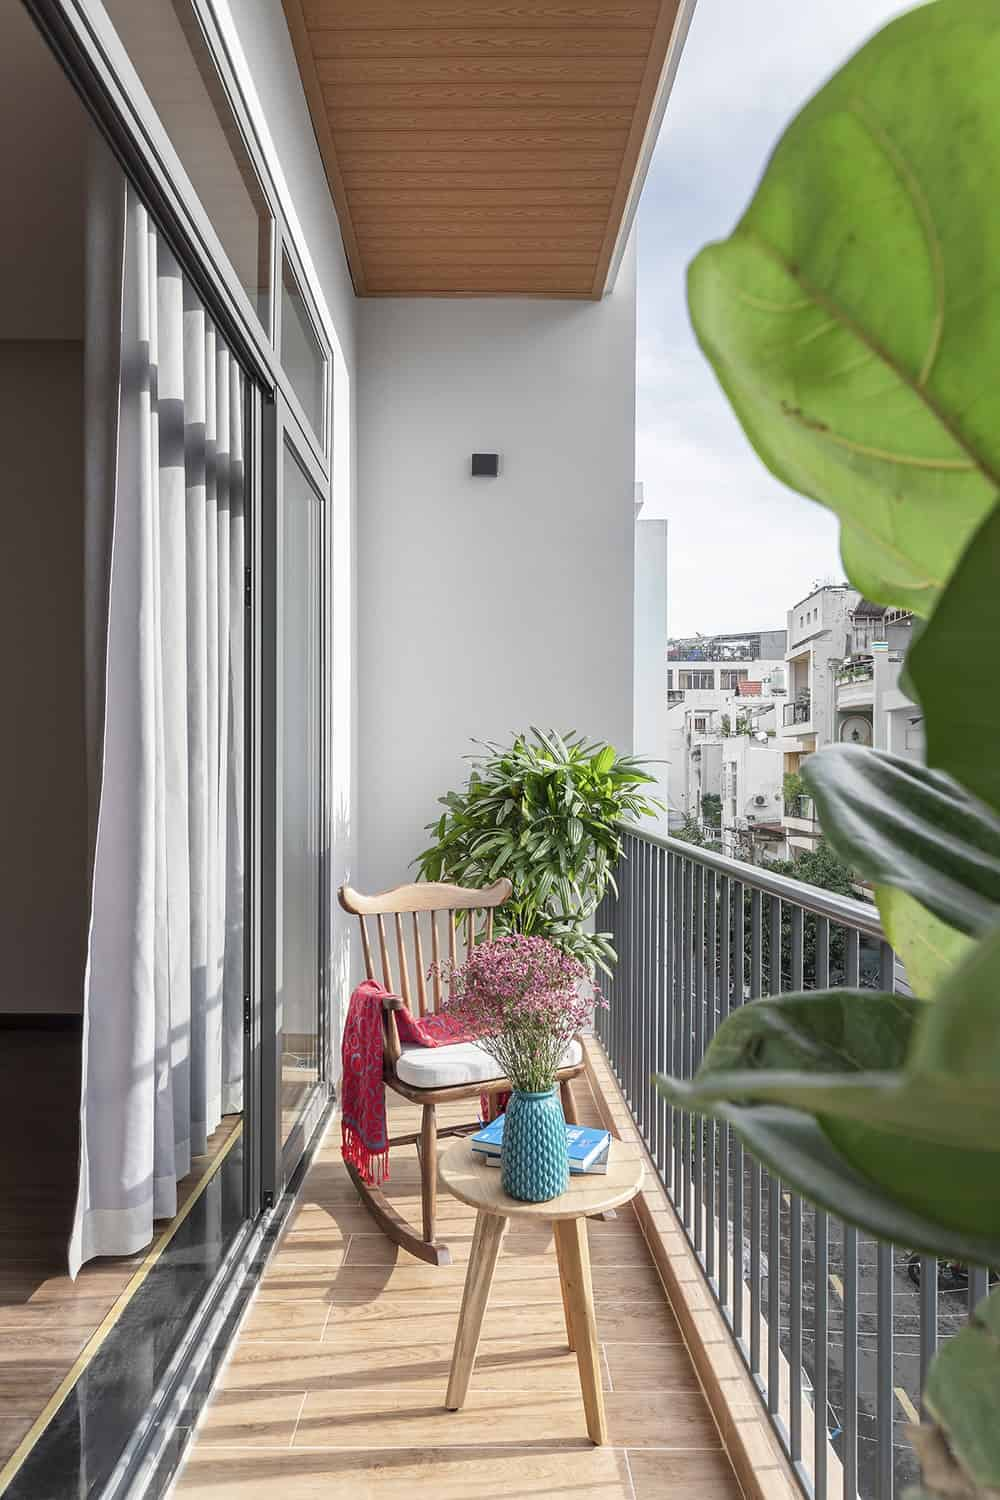 This view of the balcony showcases the size of the area that can only fit one wooden chair and a wooden coffee table.